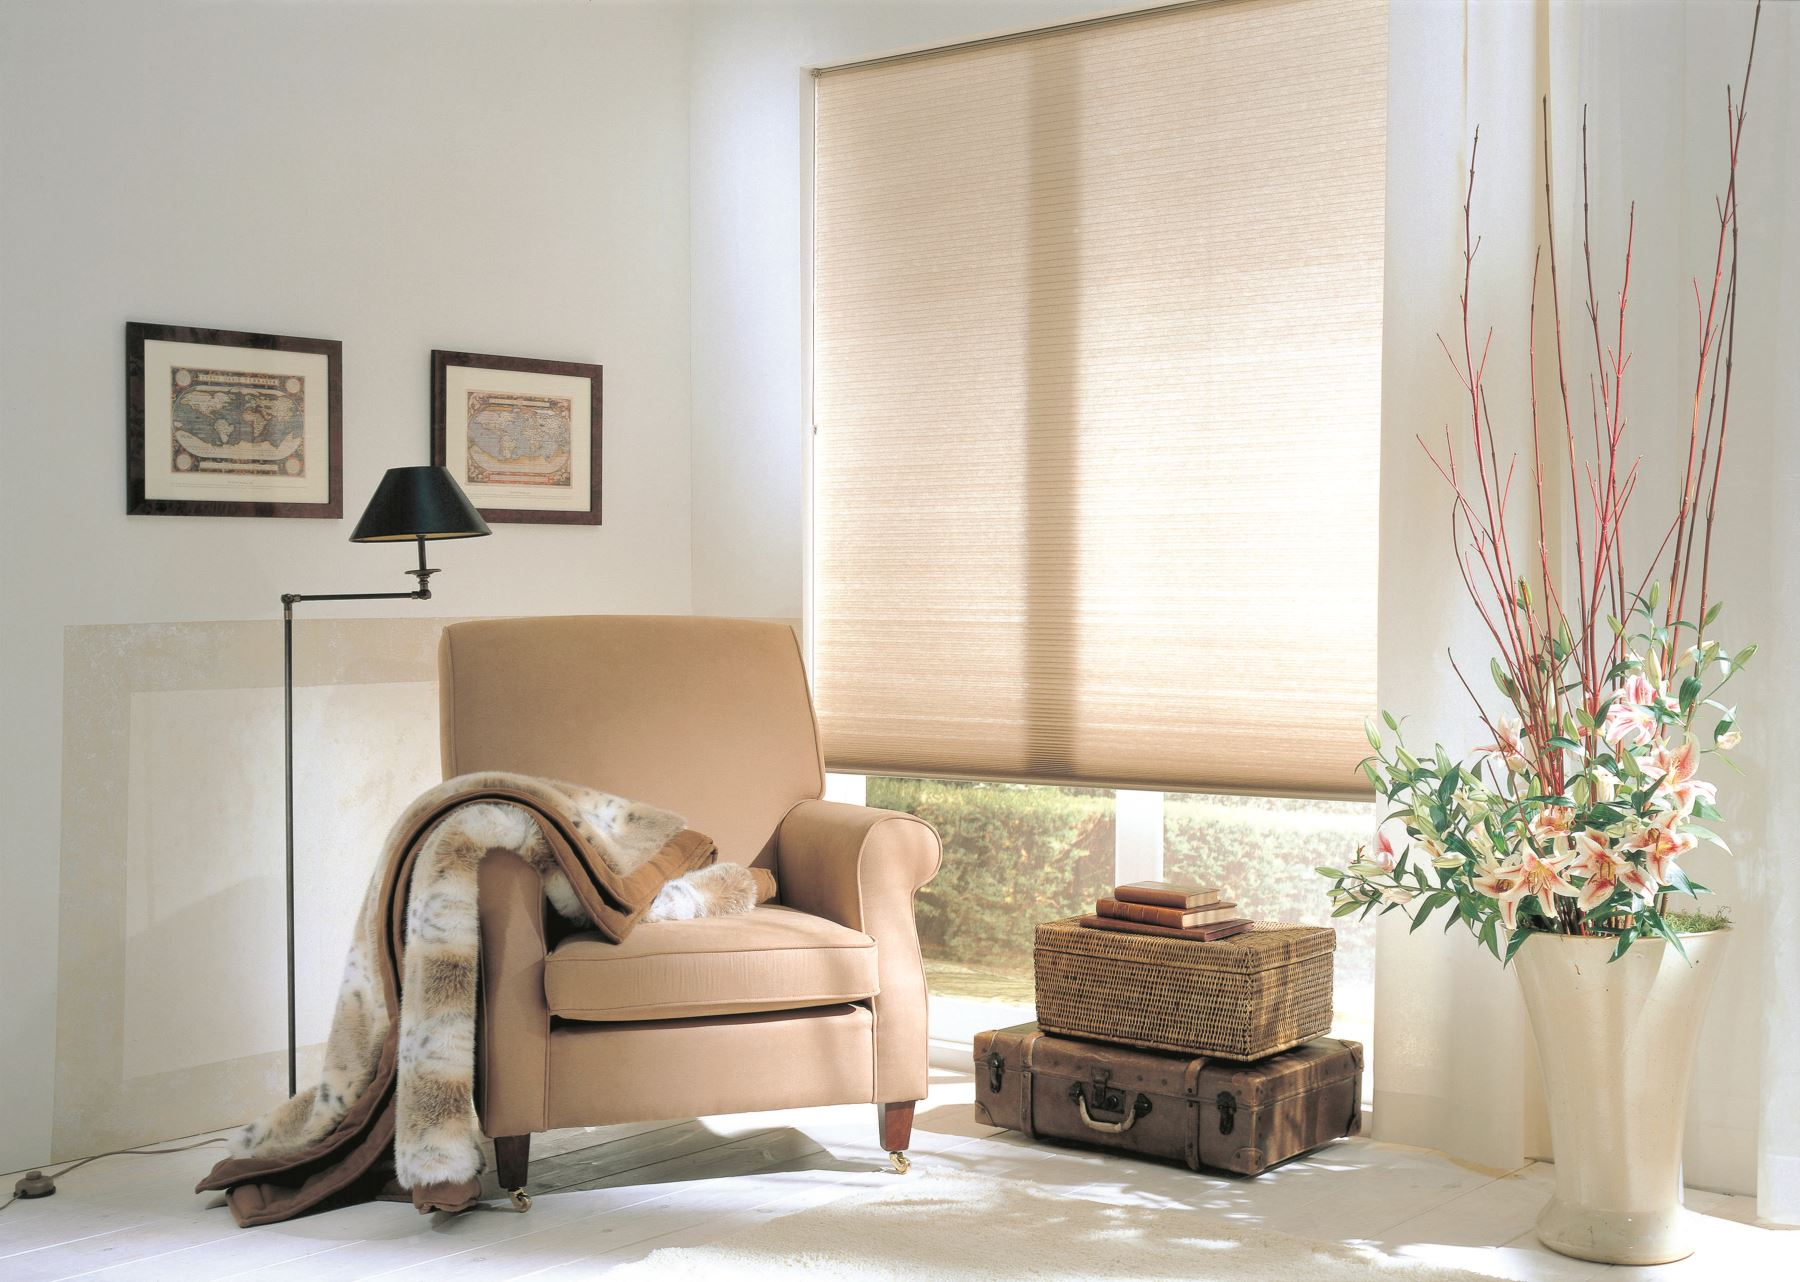 me shade window near silhouettes blinds hd cleaning blind slider and commercial stores canton